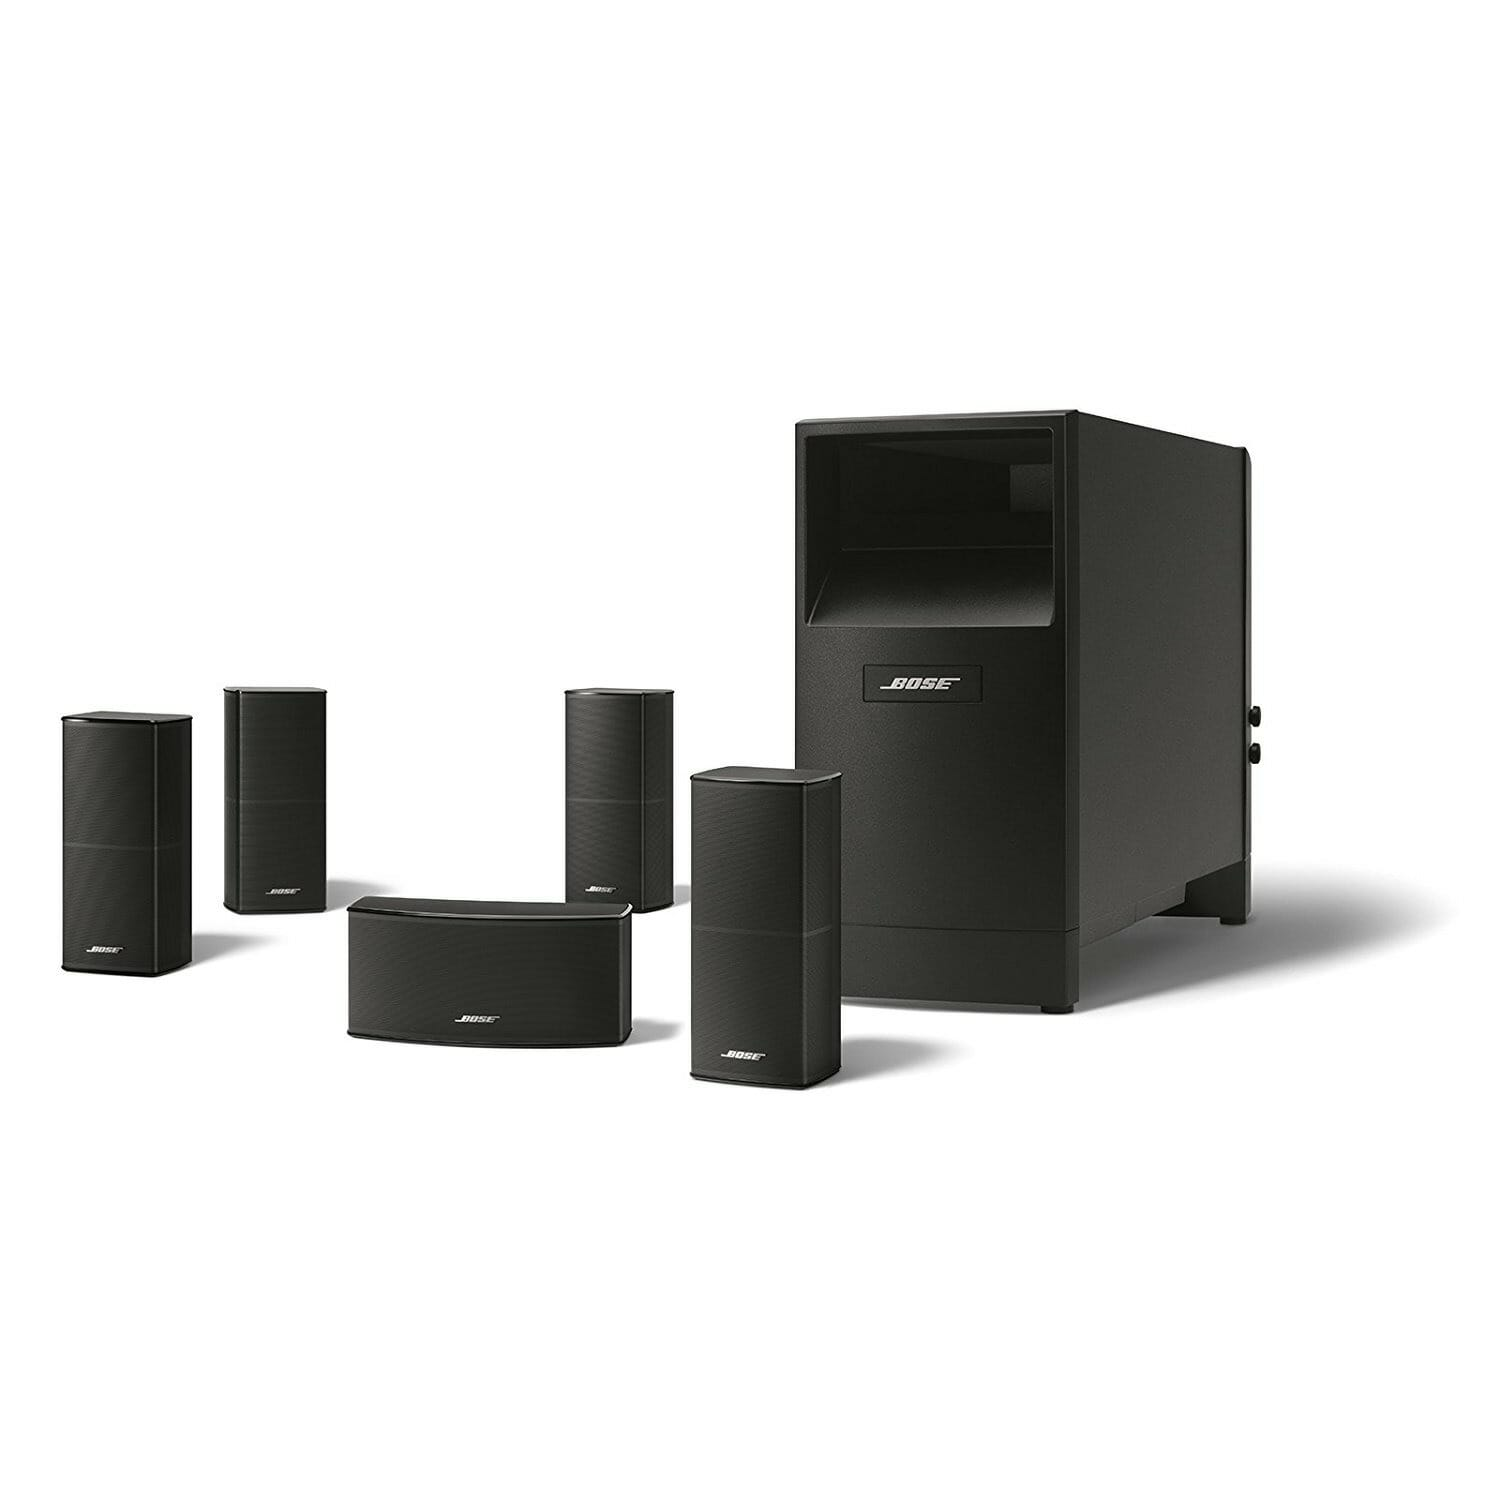 The Bose Acoustimass 10 Series II Home Theater Speaker System